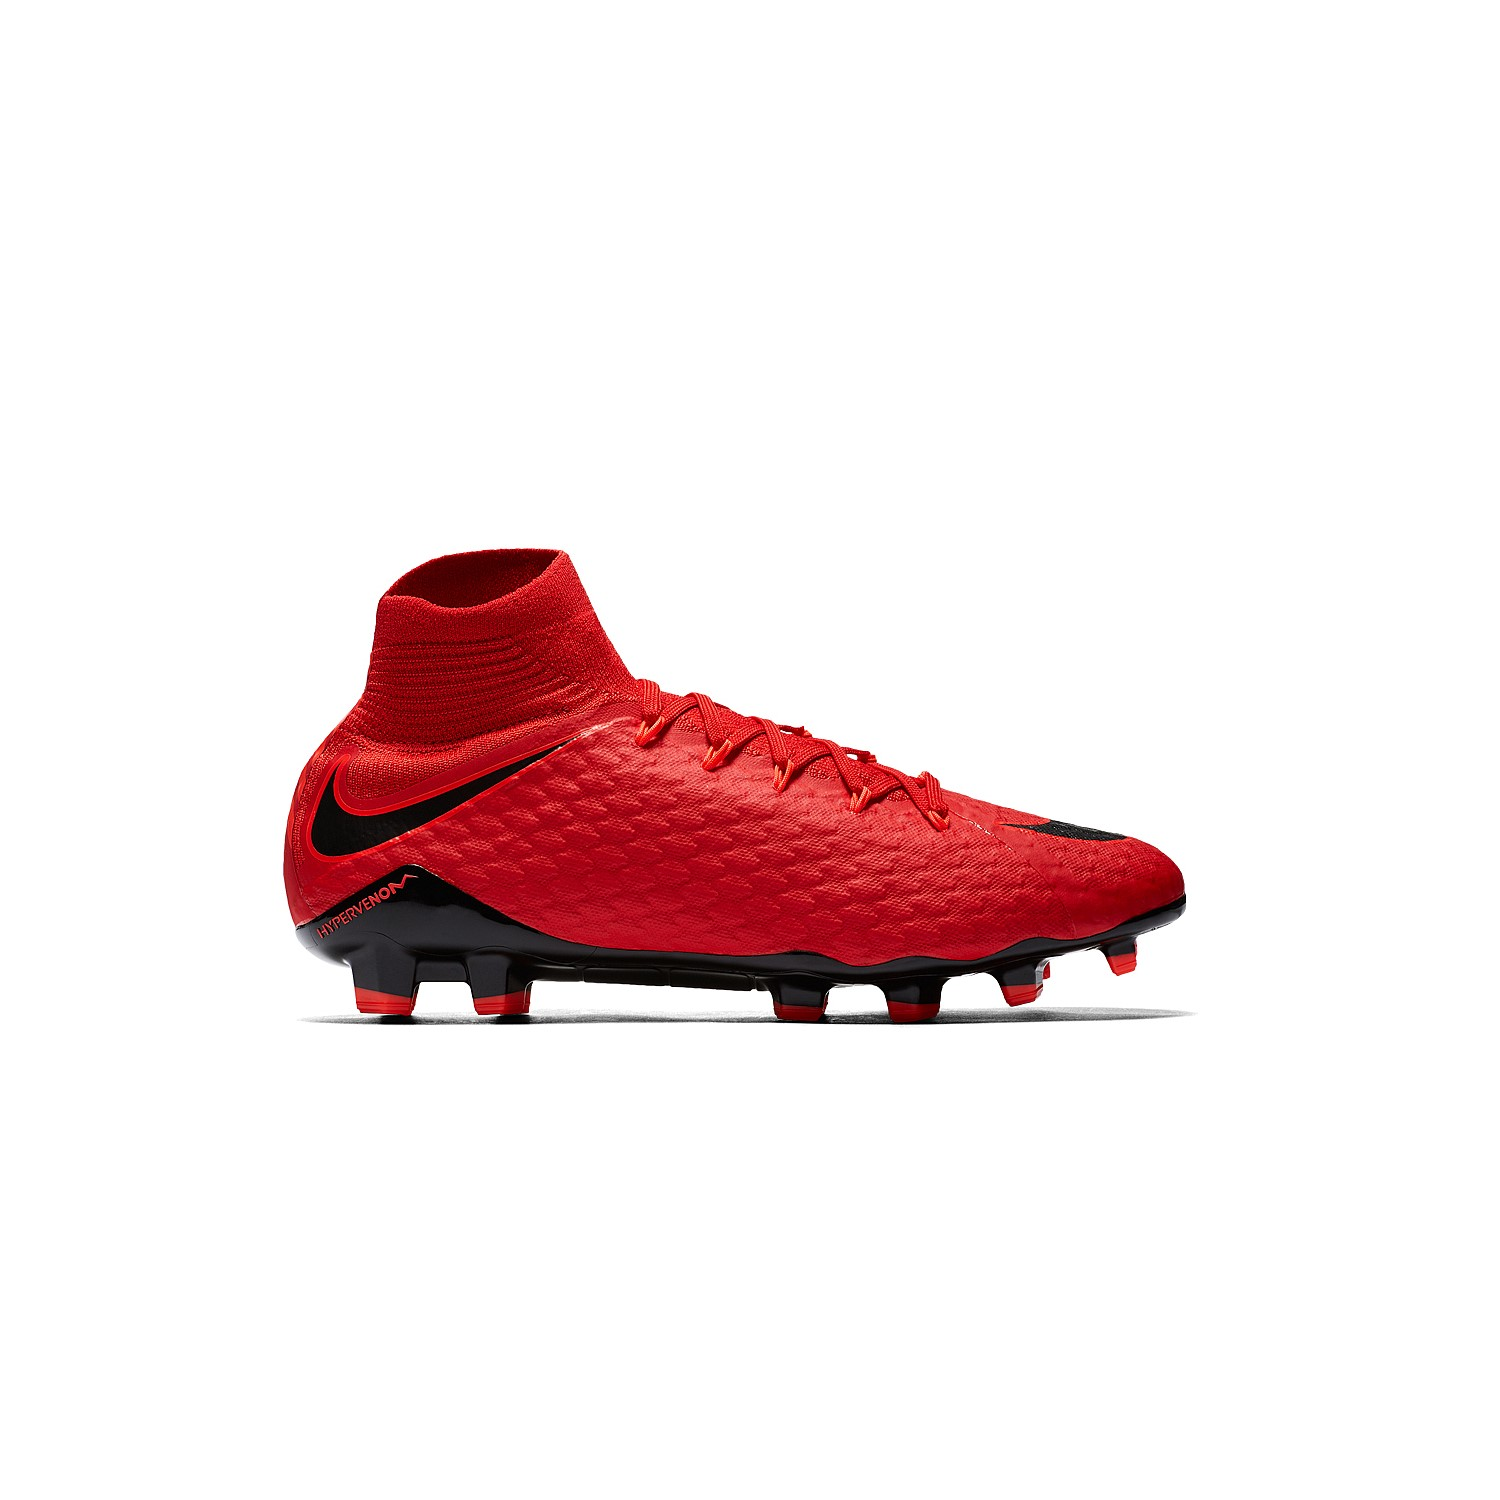 purchase cheap 8cebc ad782 Football Boots   Shop Football Boots Online   Stirling Sports - Hypervenom  Phatal III Dynamic Fit Firm Ground